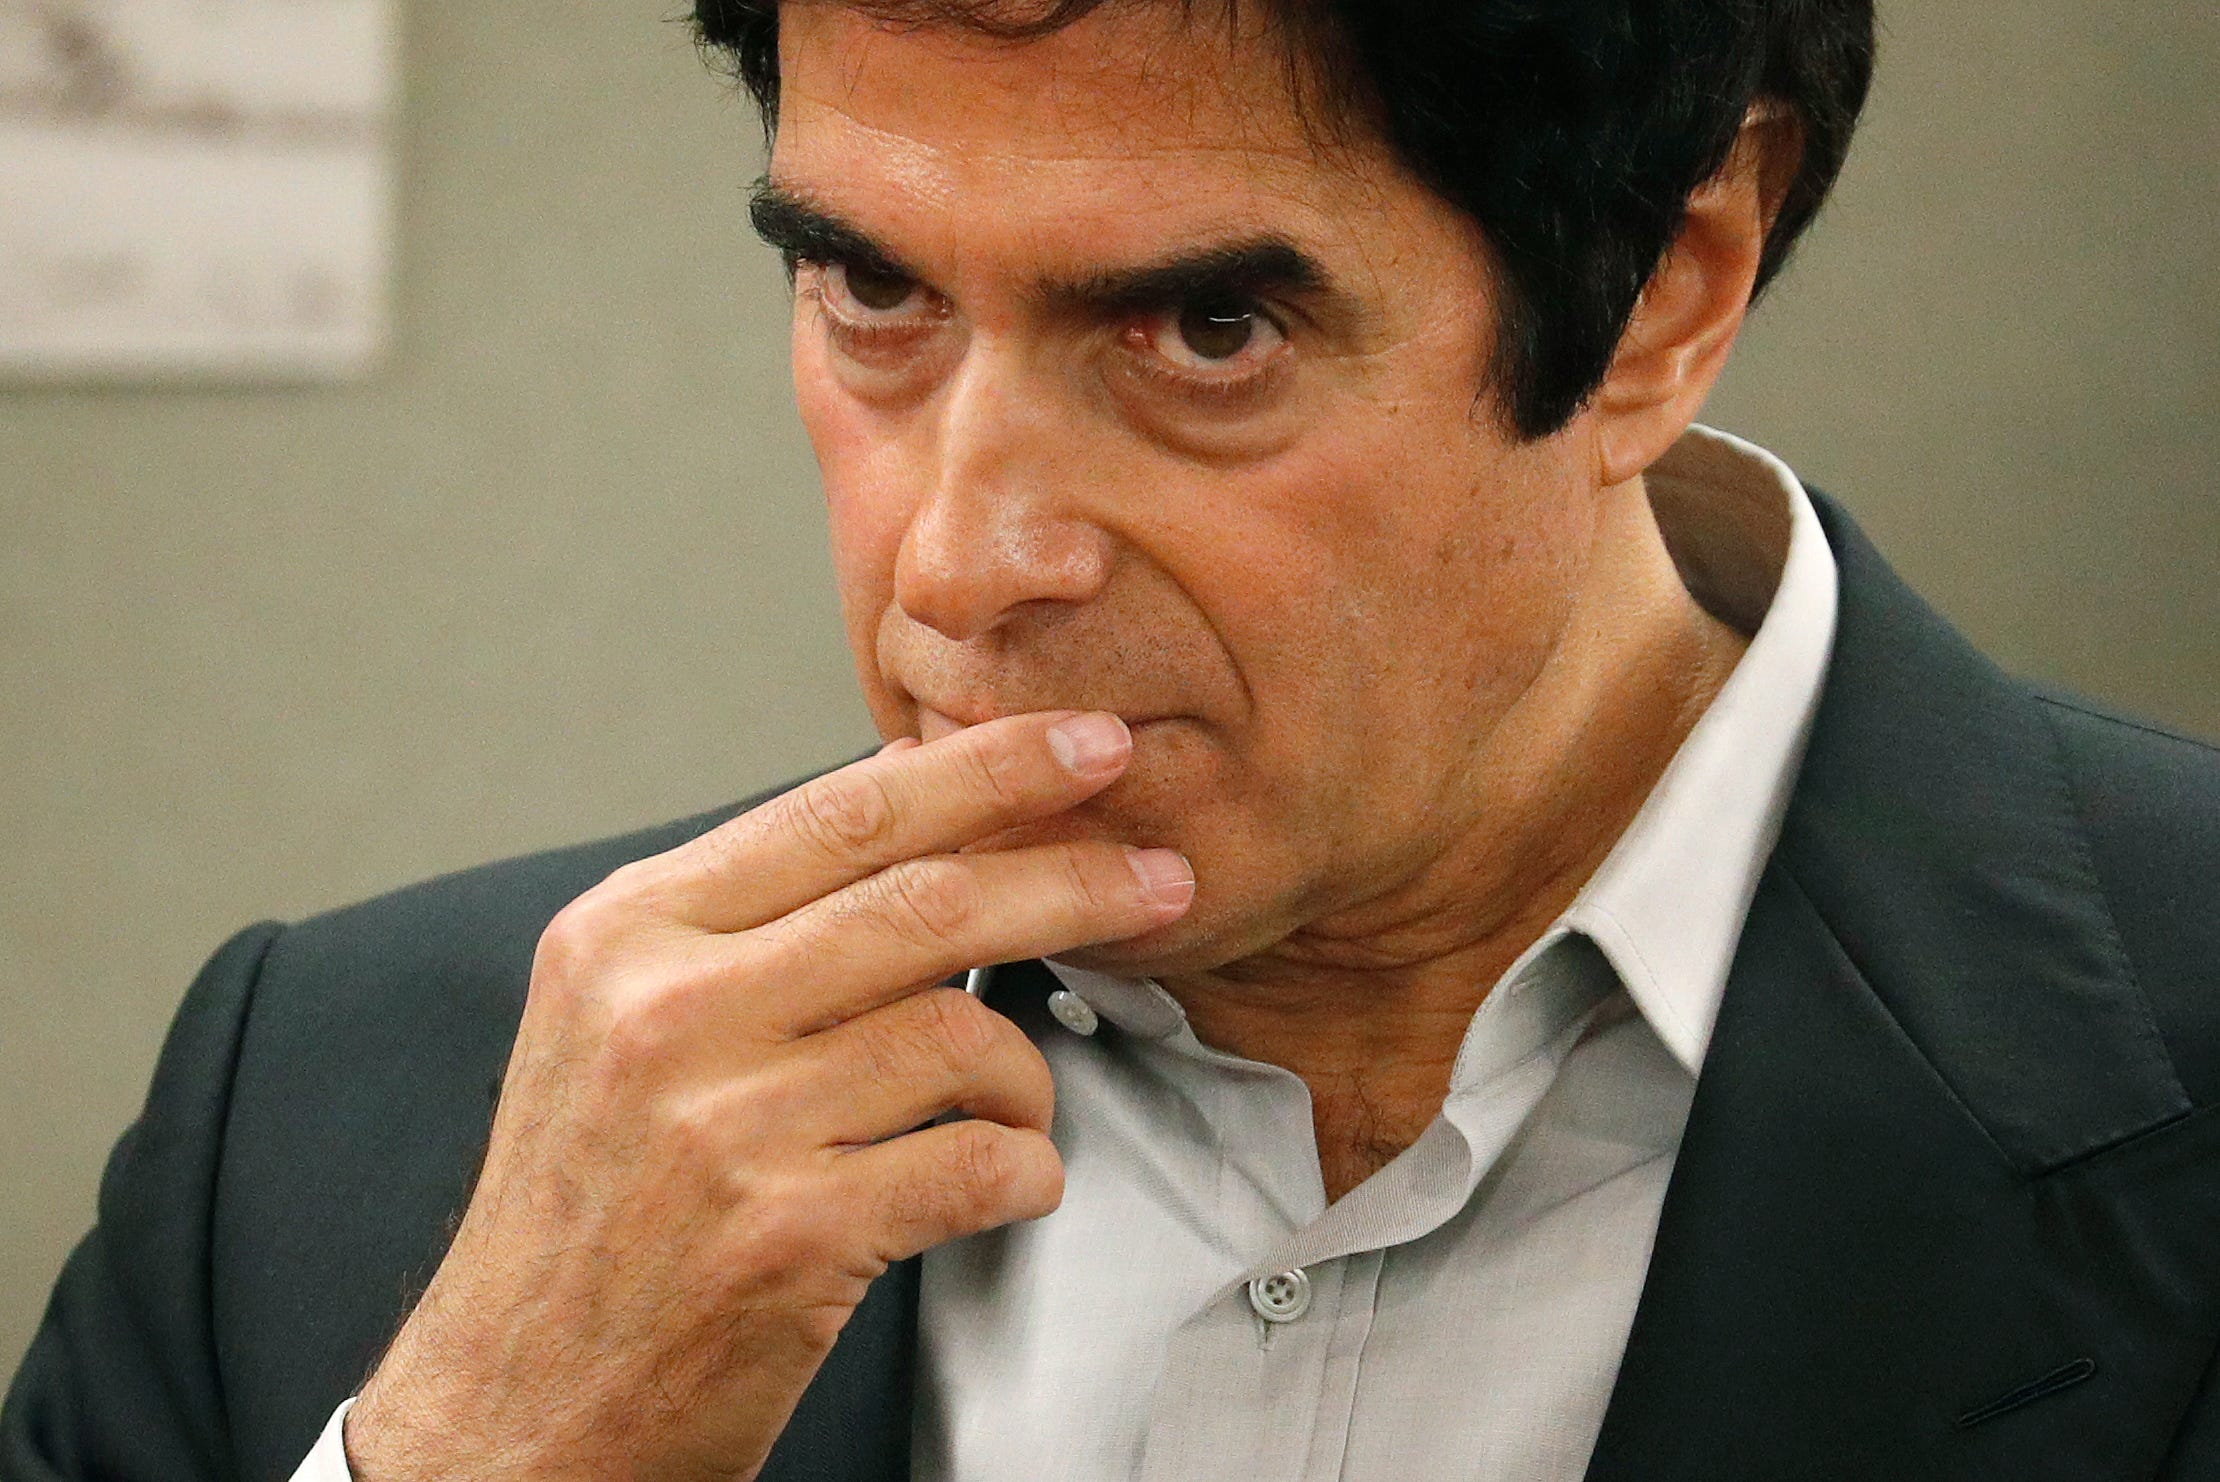 David Copperfield trial: Judge rejects mistrial request by magician's lawyer